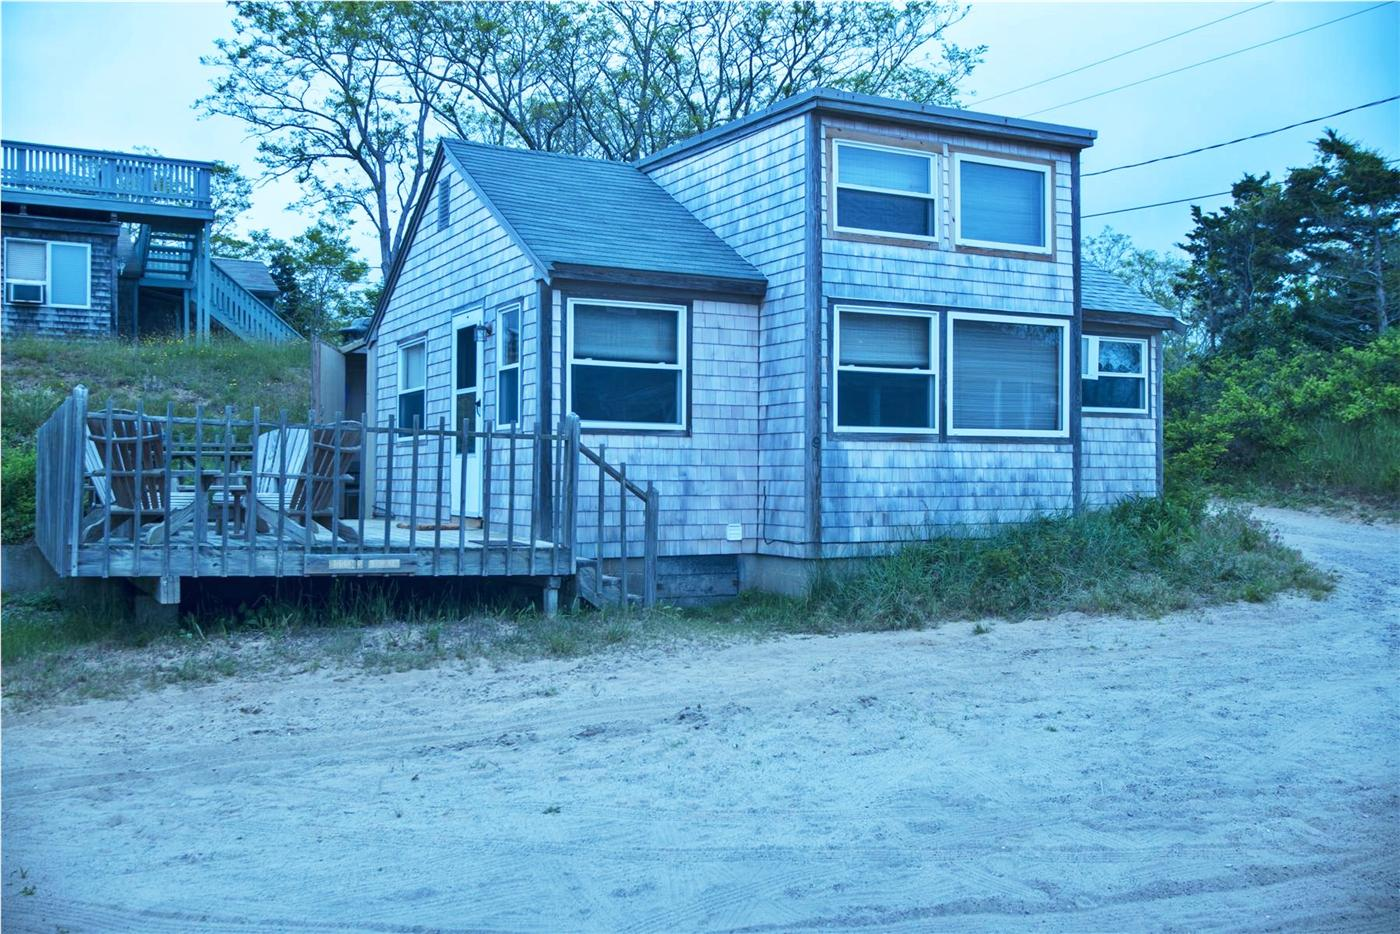 Eastham Vacation Rental Home In Cape Cod Ma 02642 10